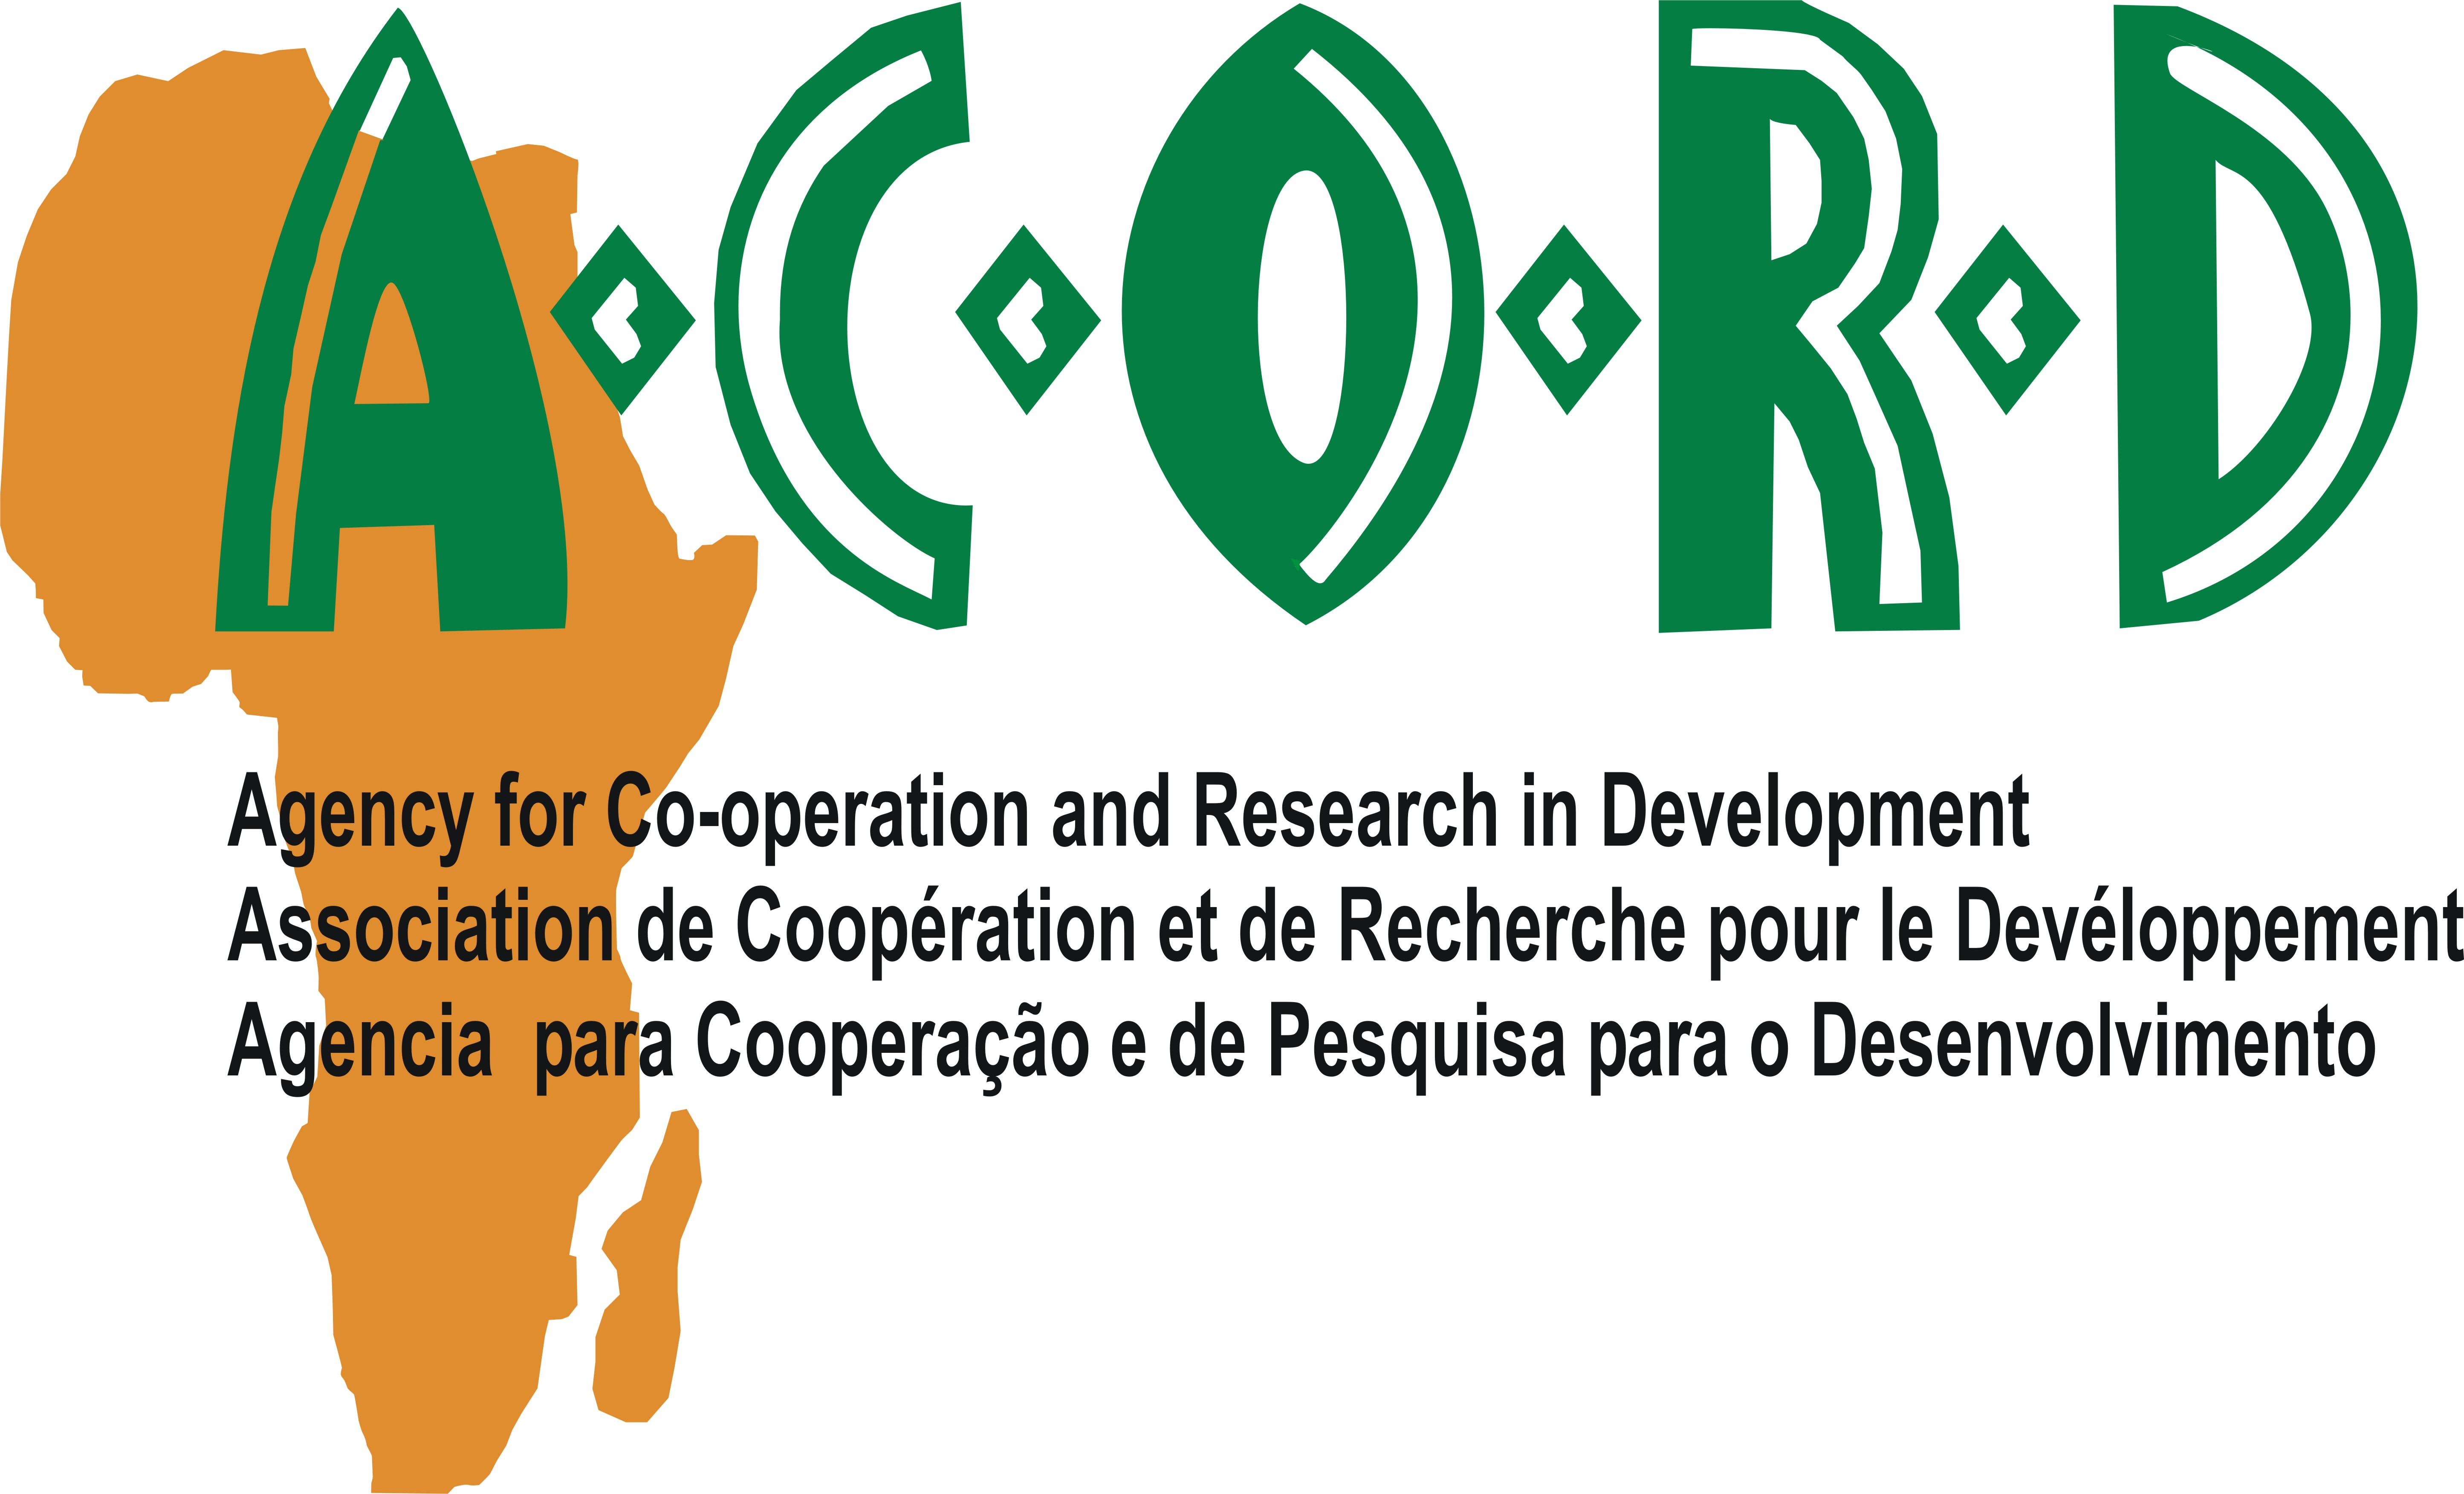 logo for ACORD - Agency for Cooperation and Research in Development